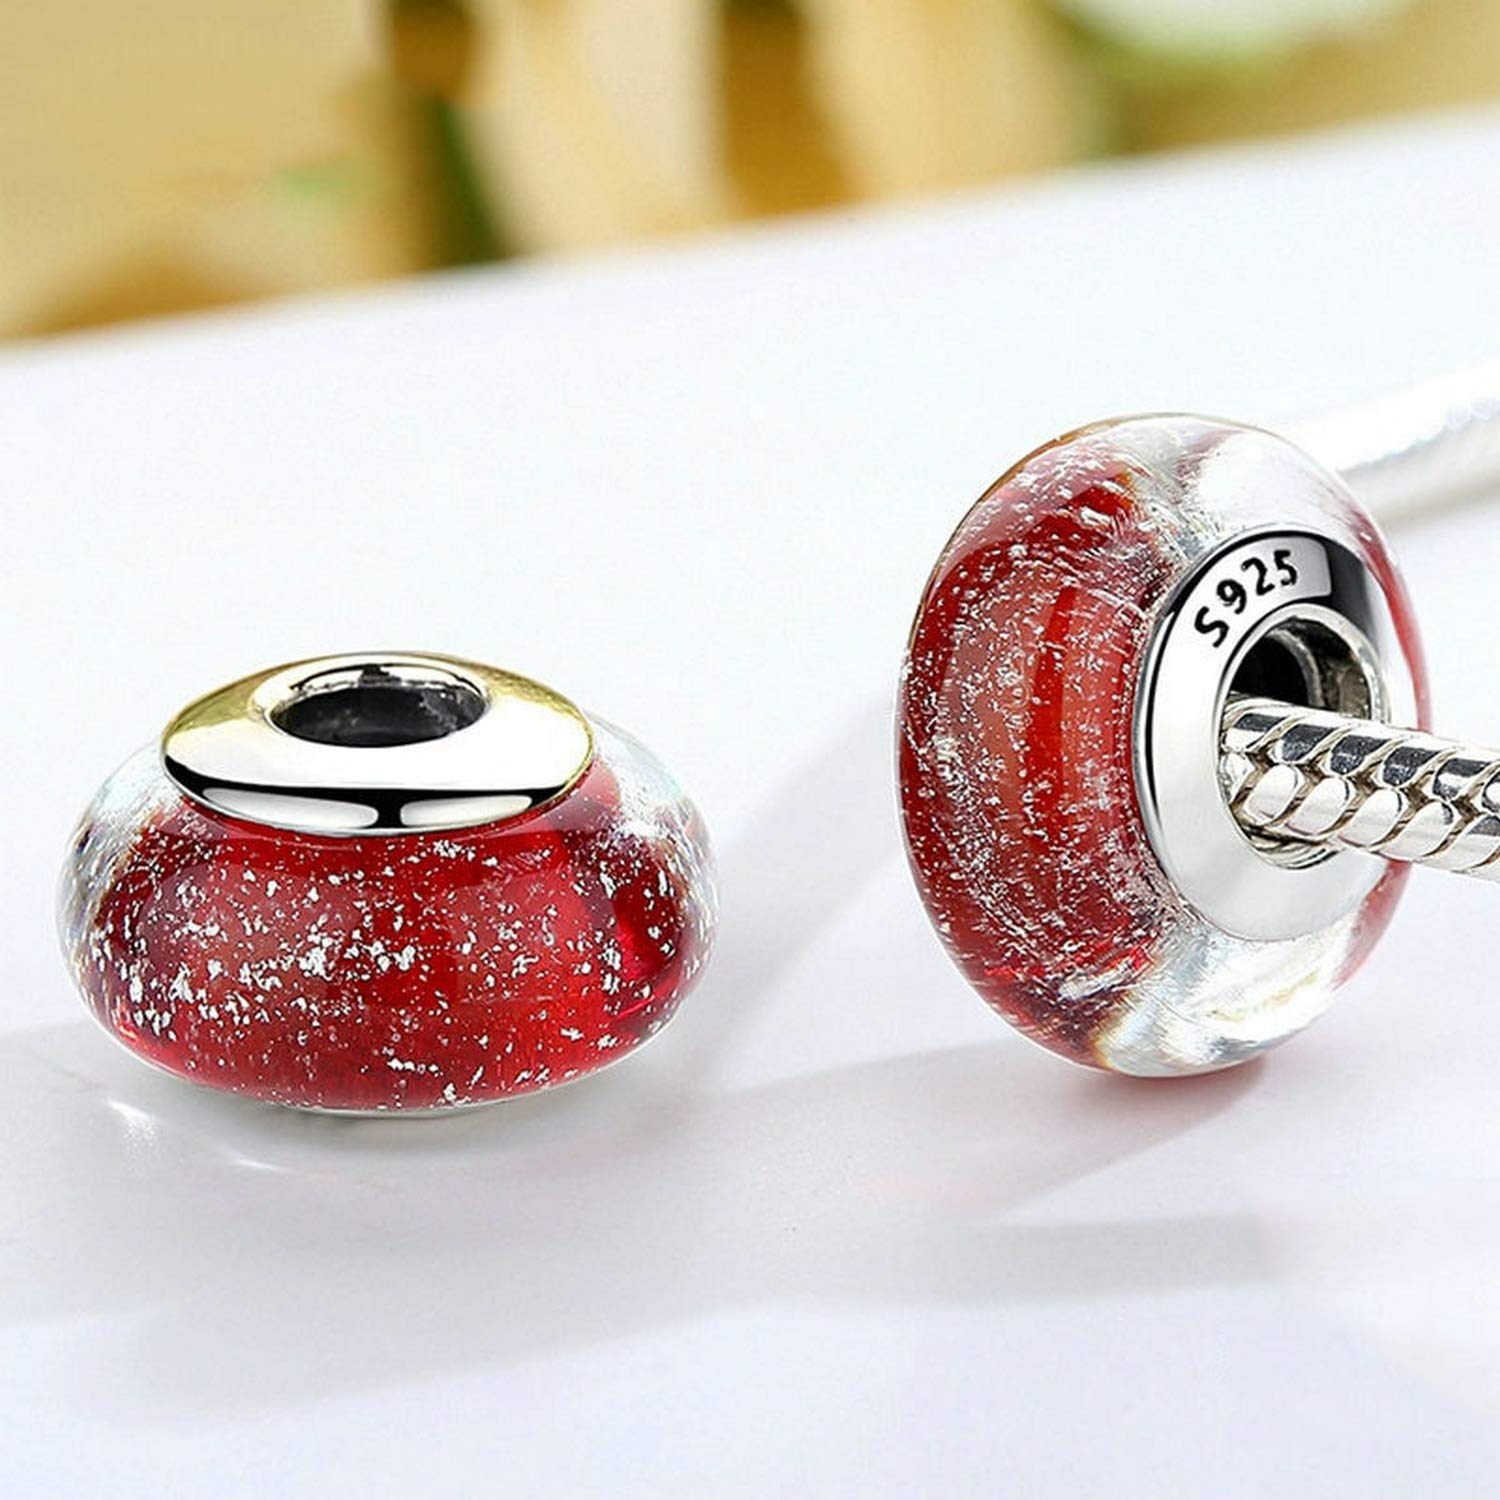 Evereena Silver Beads Bracelet for Girls Fashion Snow Whites Color Red Murano Glass Womens Jewelry